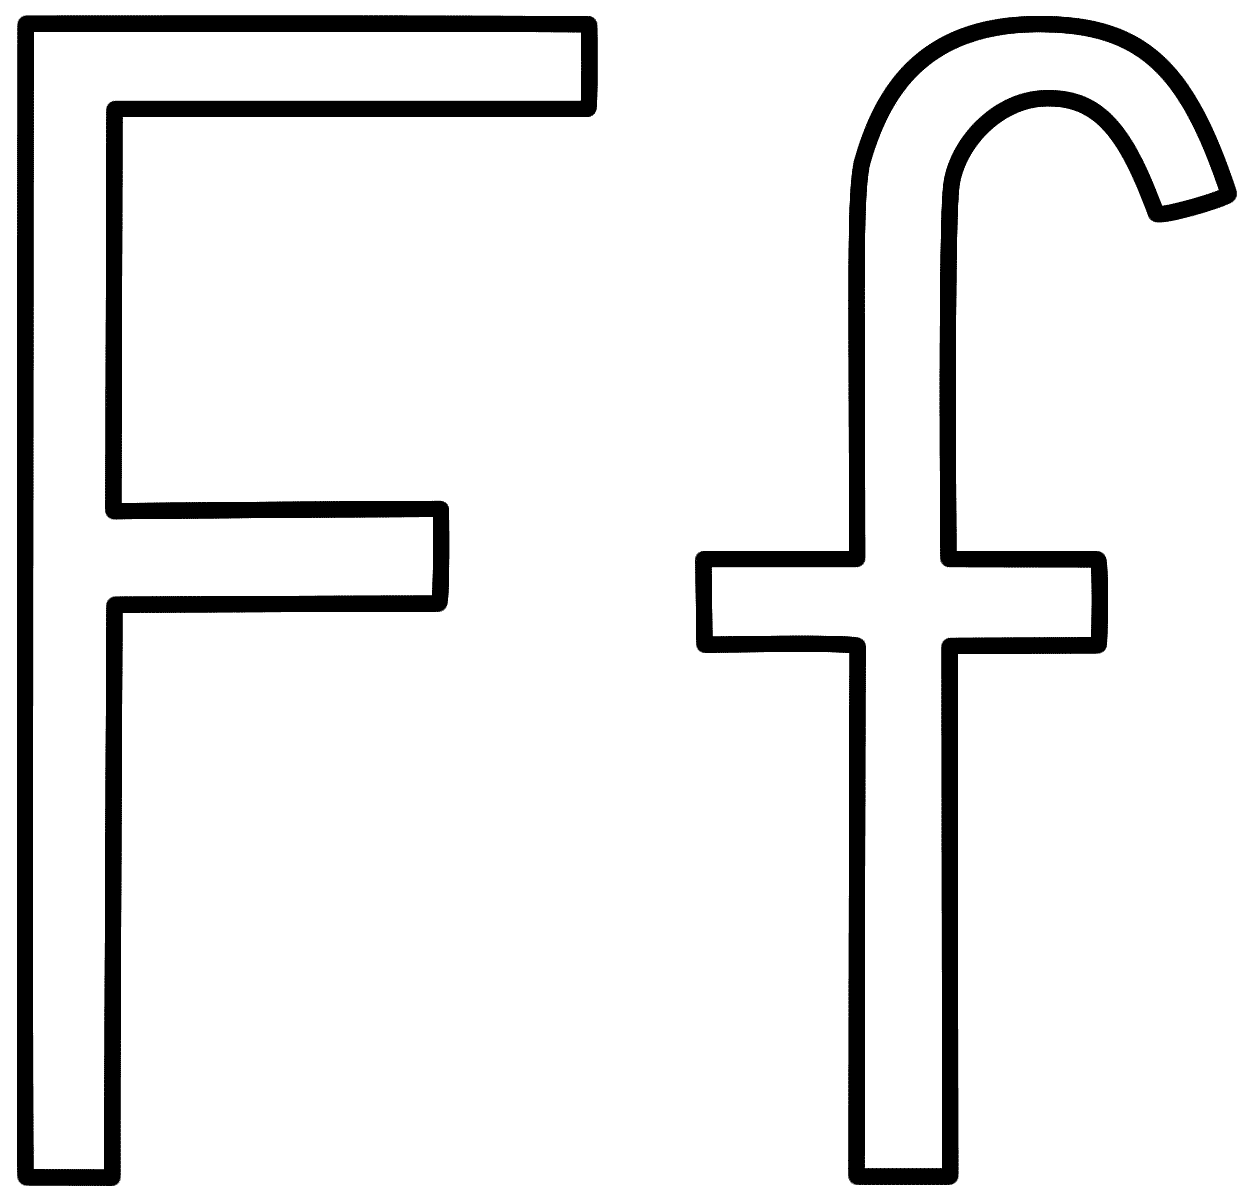 letter f coloring sheet letter f coloring pages of alphabet f letter words for f sheet coloring letter